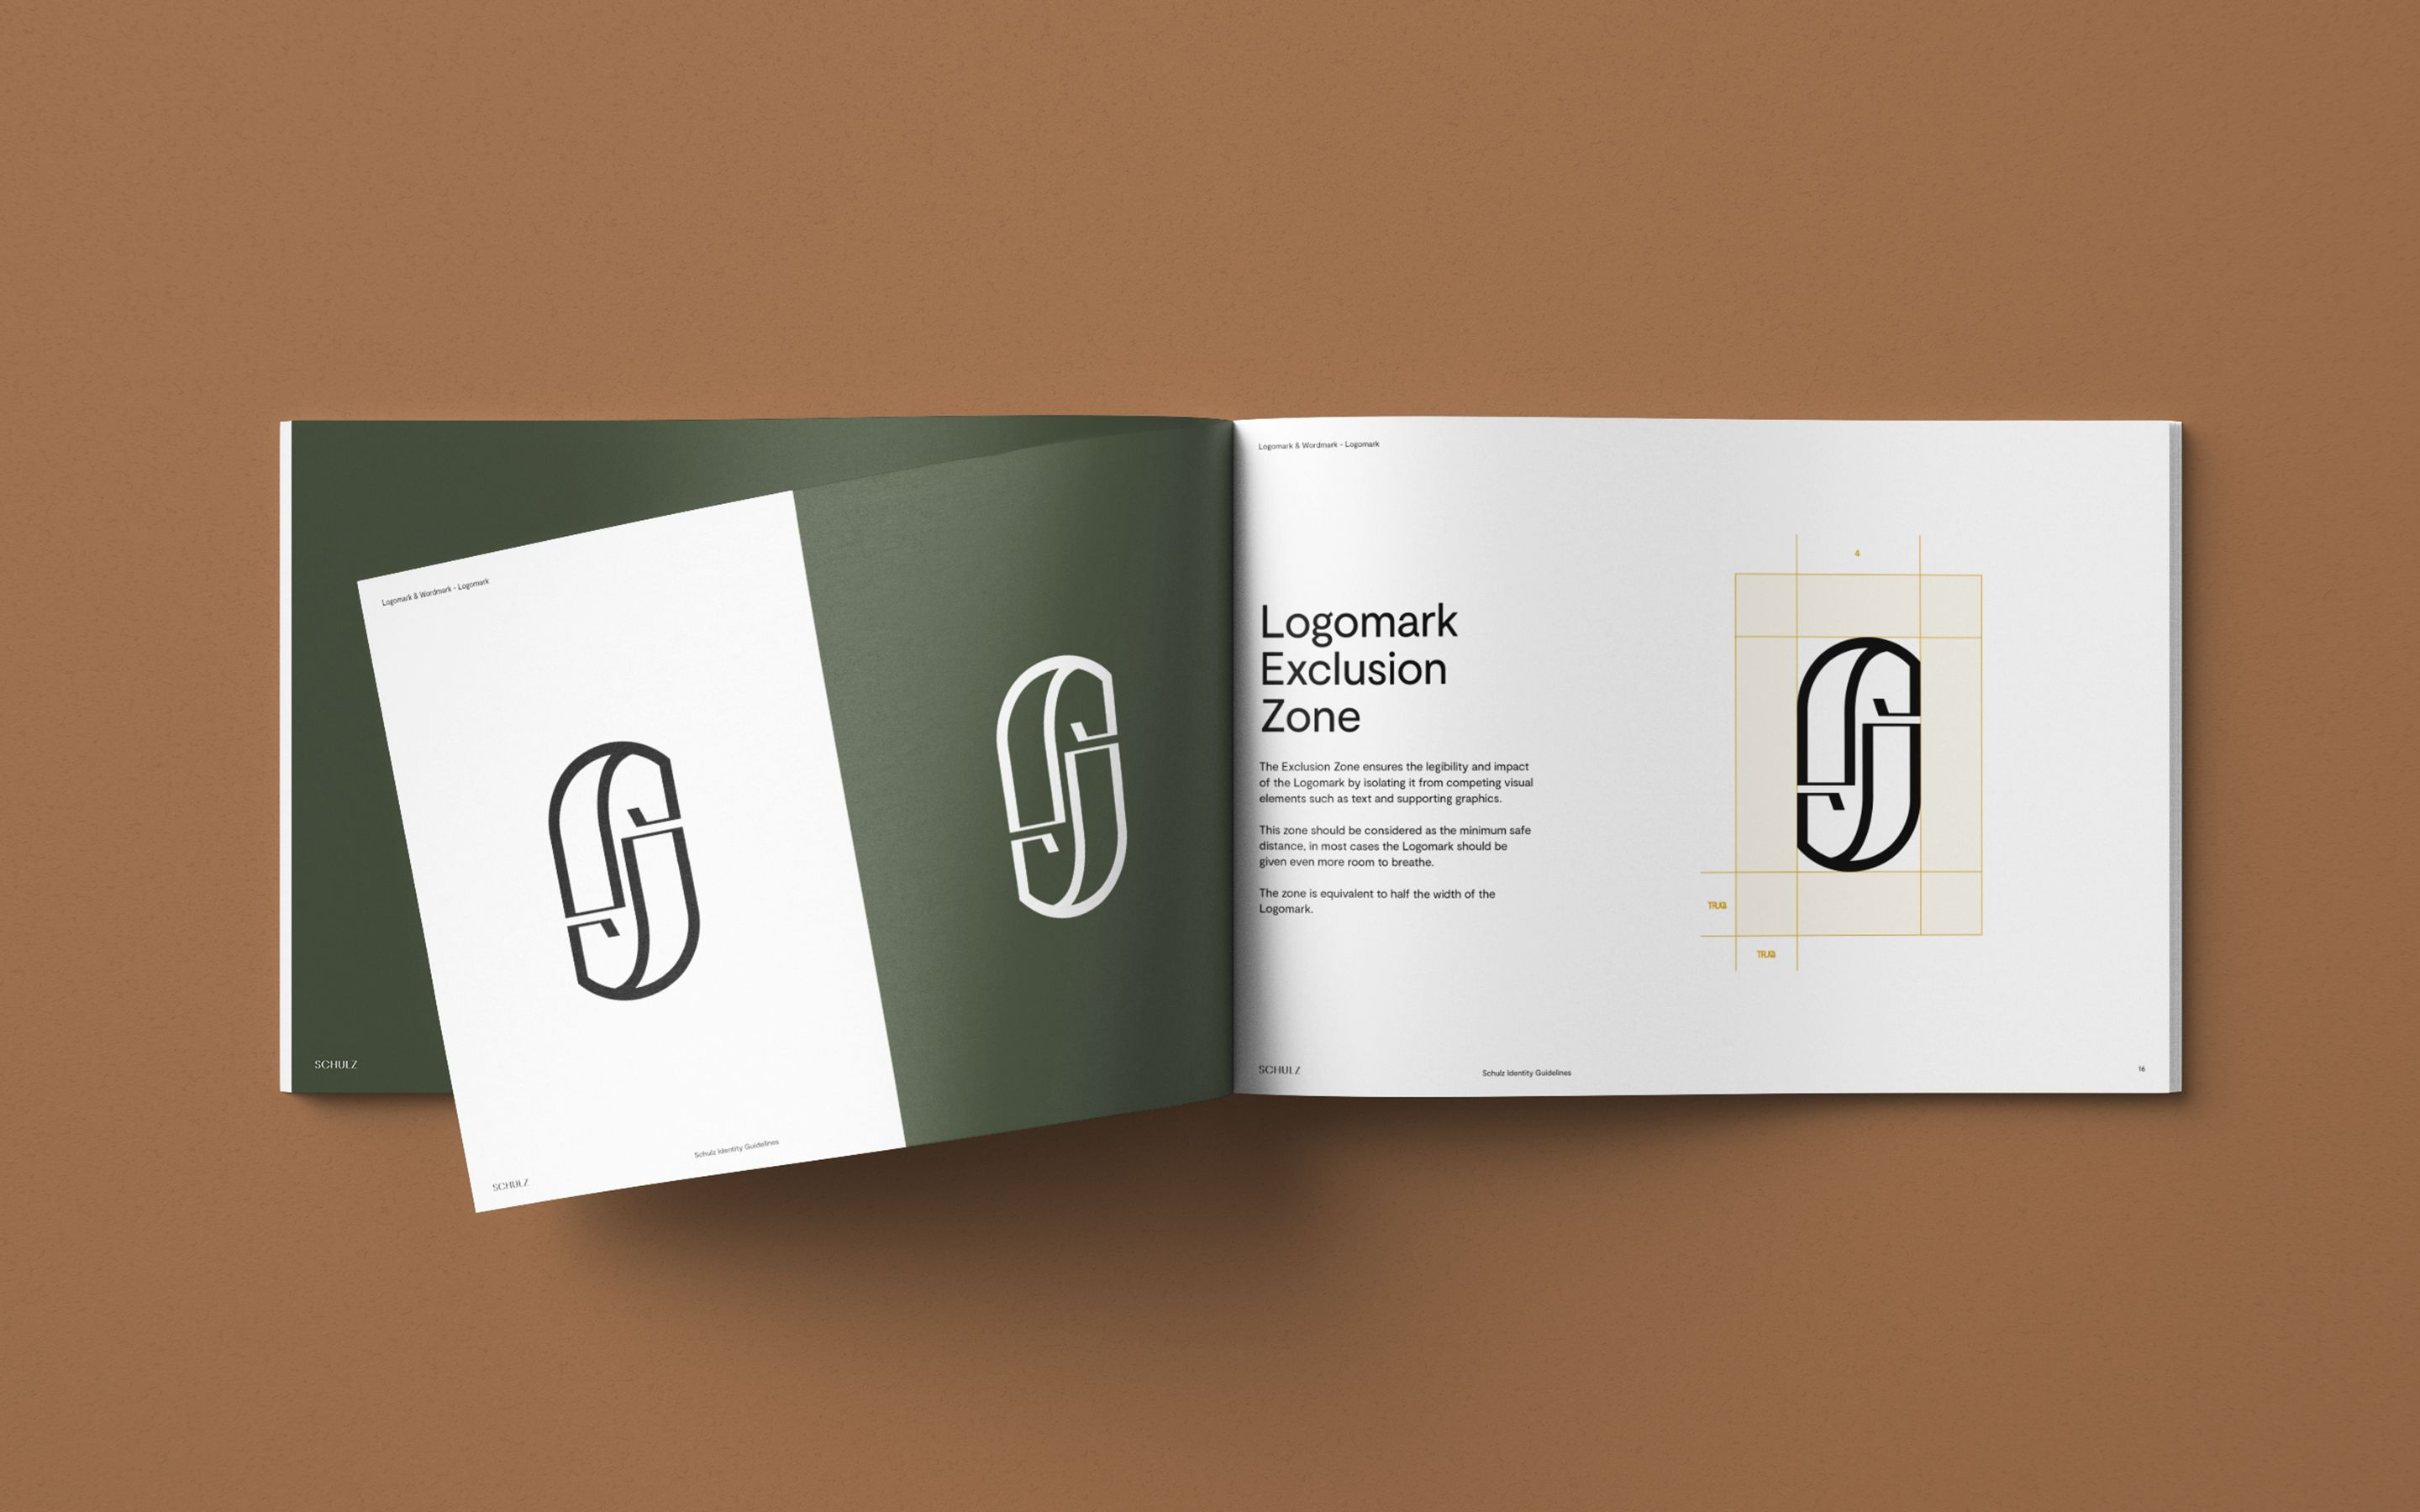 schulz equestrian bags brand guidelines